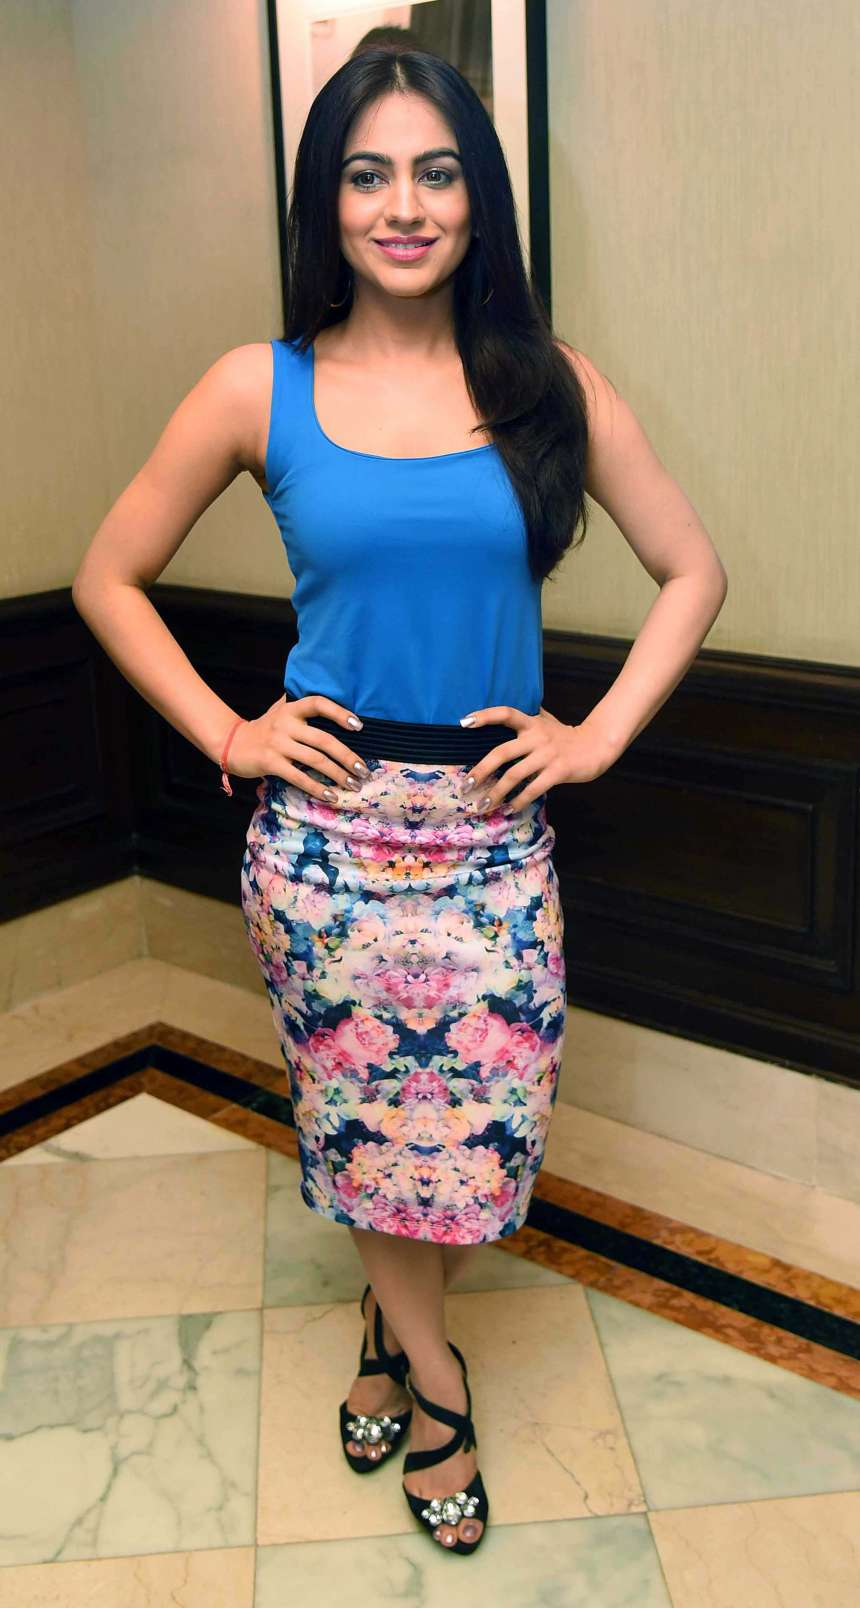 Aksha Pardasany has already been seen in various Telugu movies like Yuvatha, Ride and Kandireega. The actress looked stunning in blue top and floral pencil skirt.